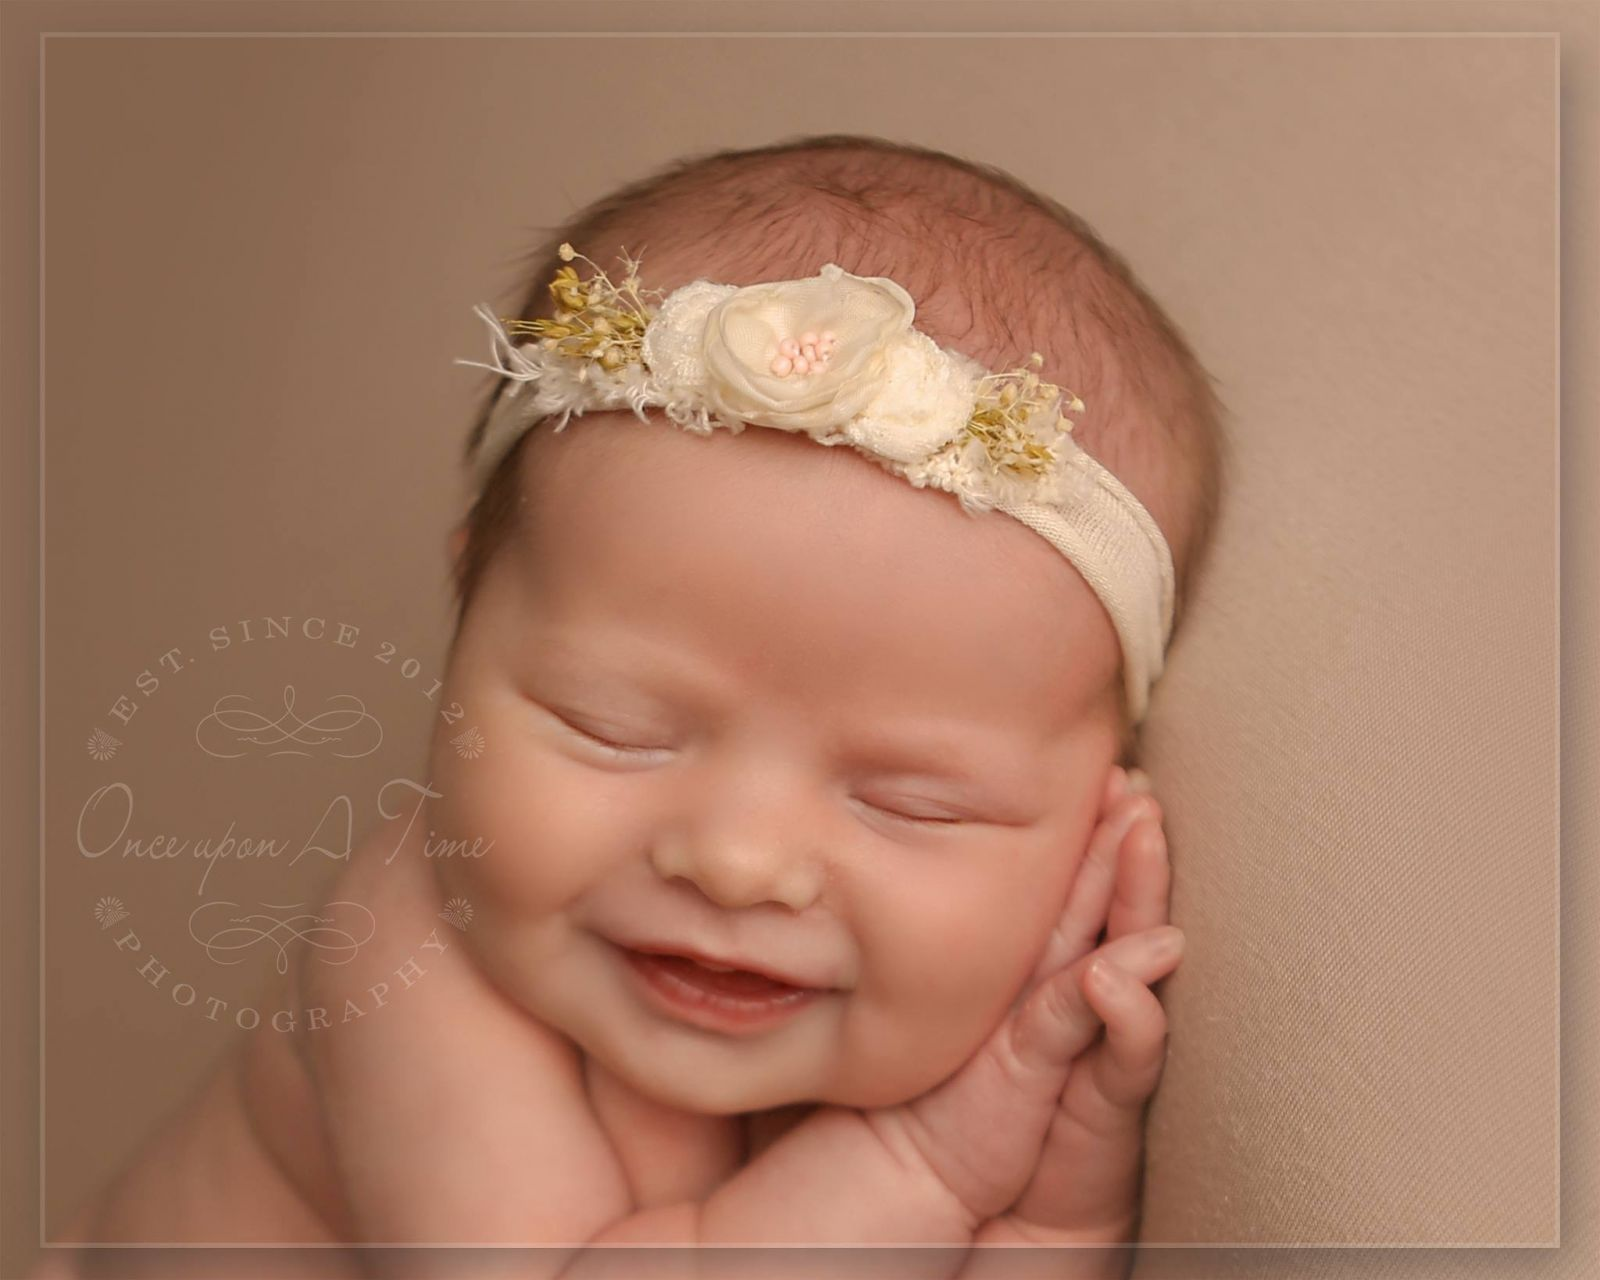 Stoke-newborn-baby-photography